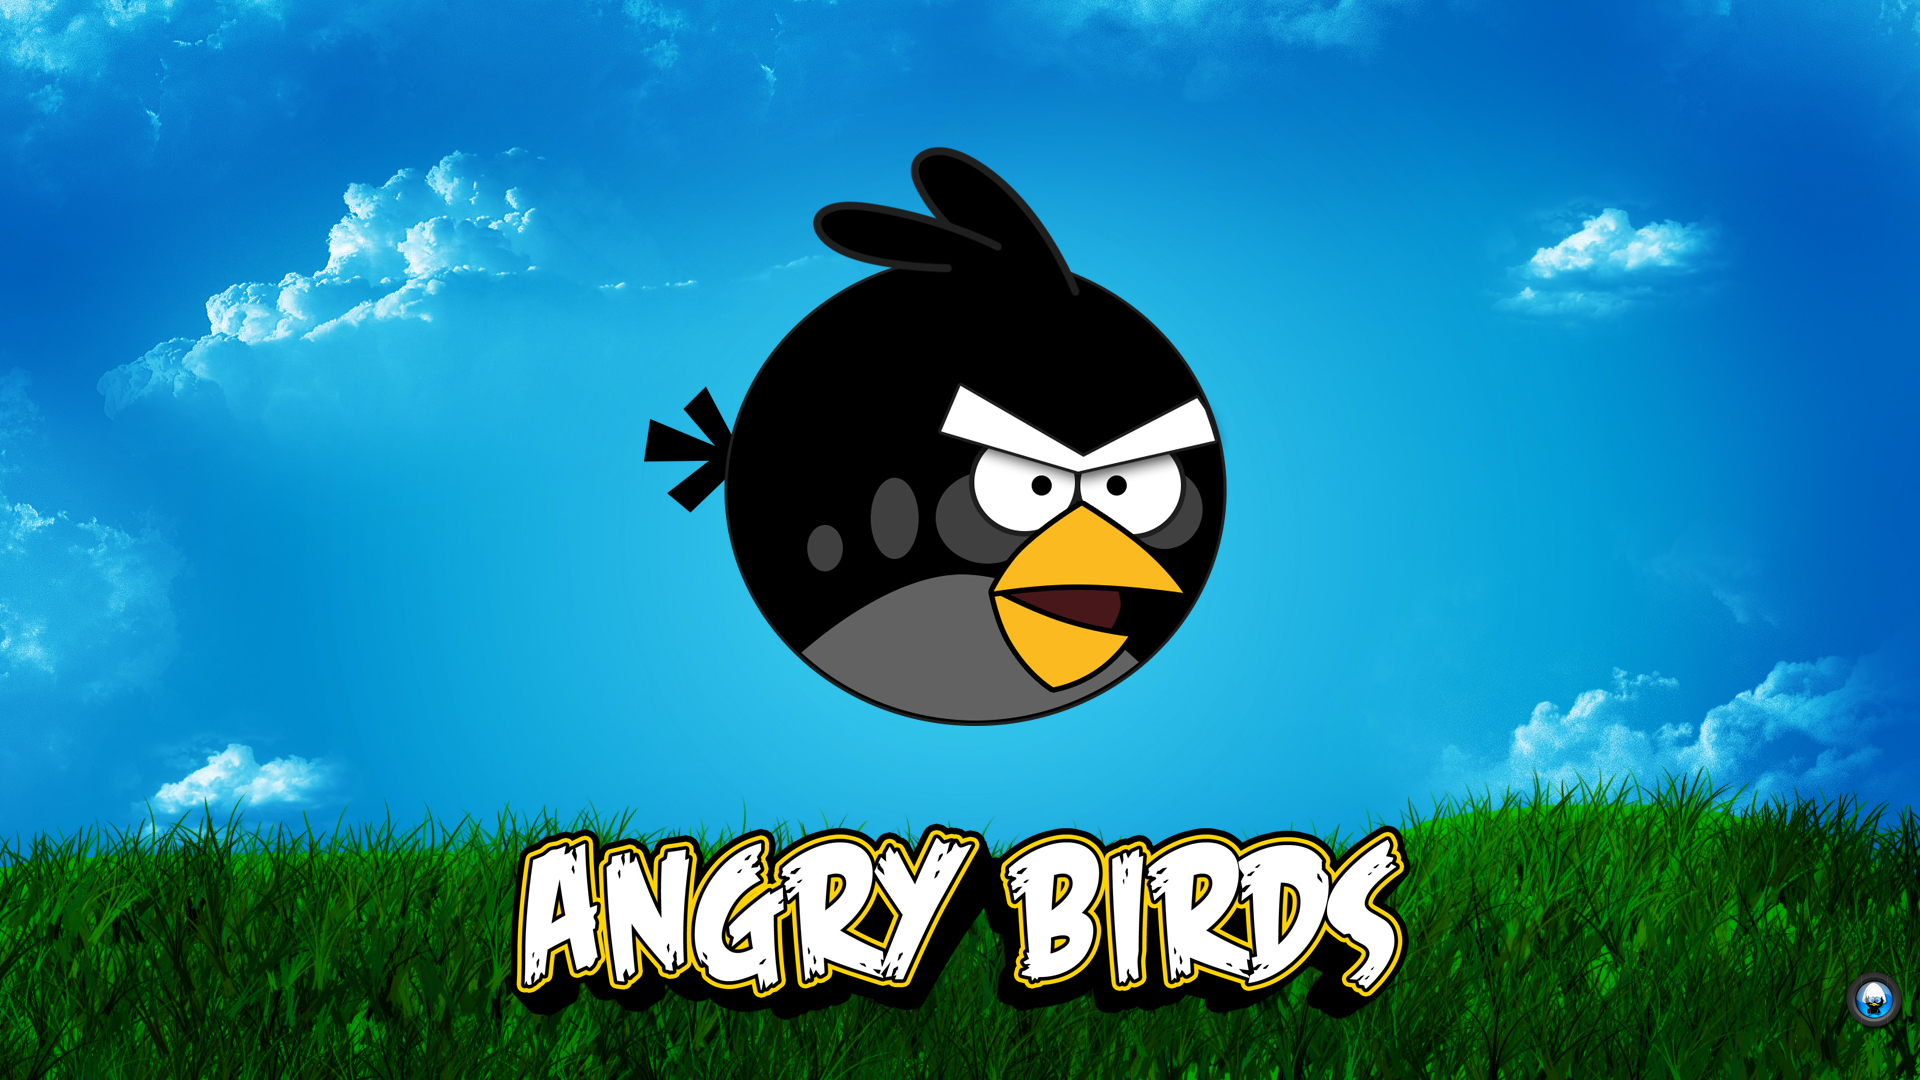 Green angry bird wallpaper